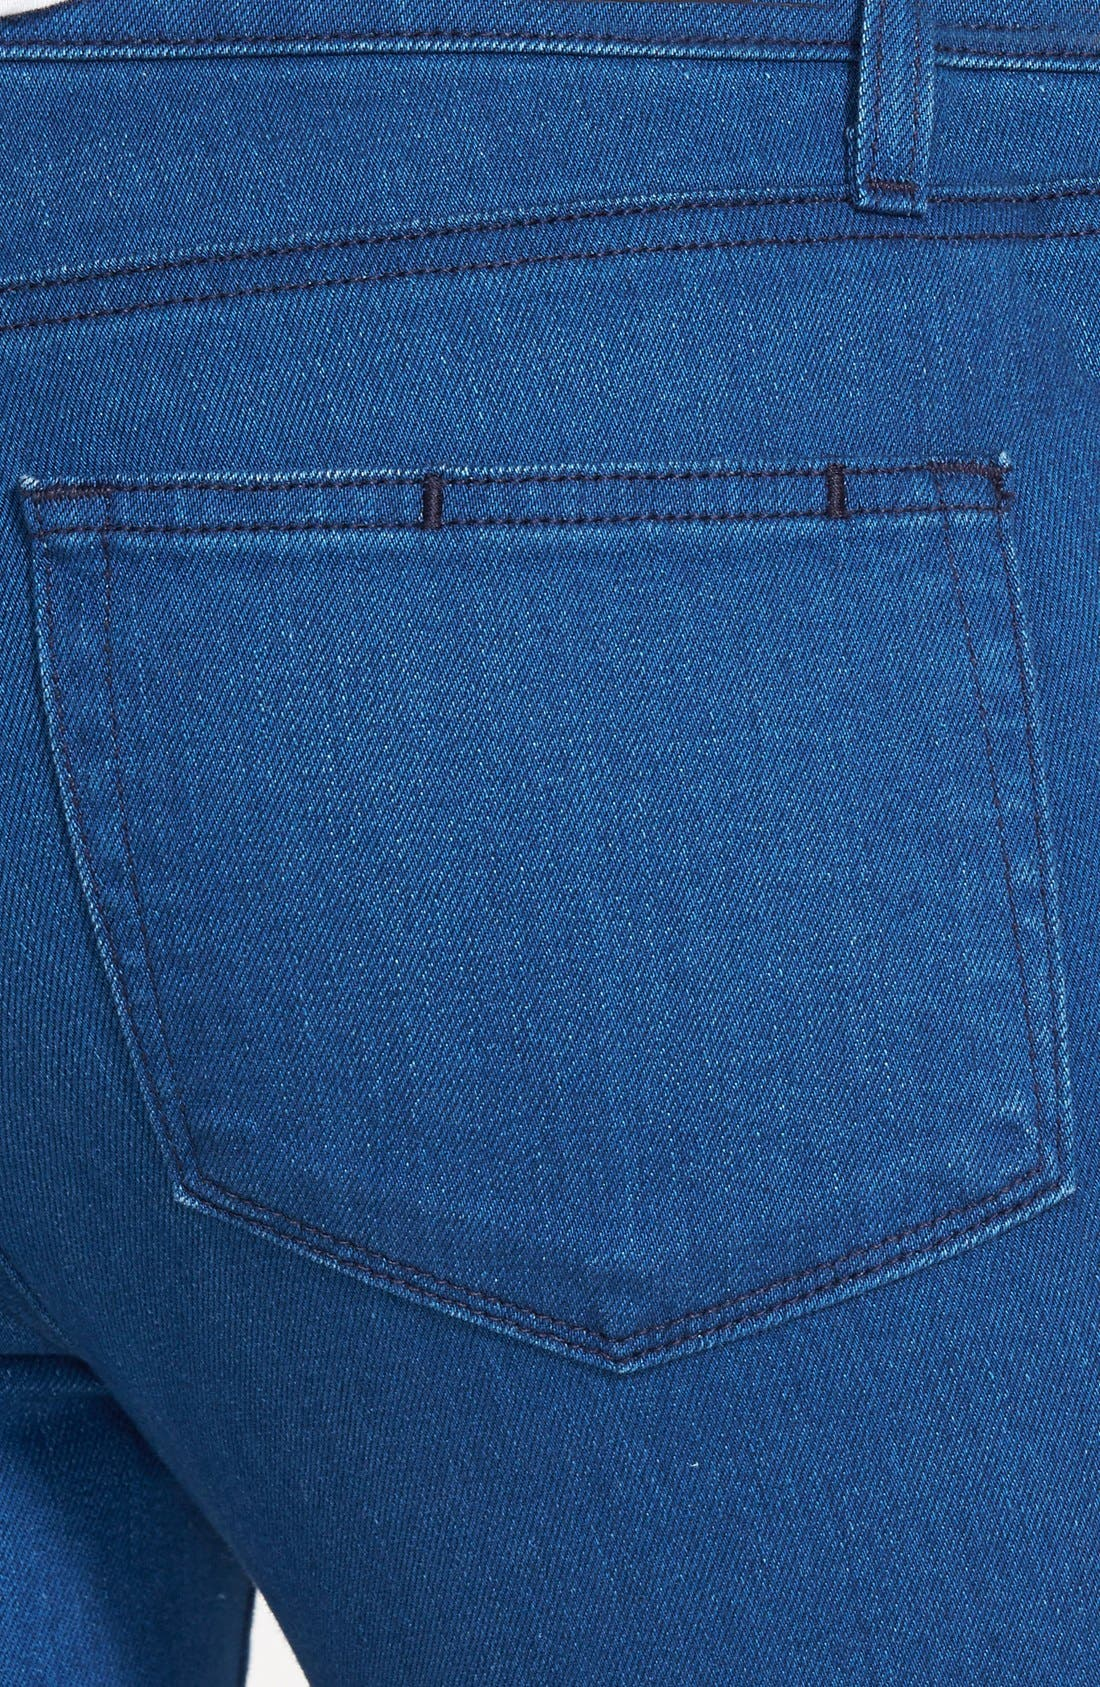 Alternate Image 3  - Paige Denim 'Hoxton' Ankle Skinny Jeans (Frenchie)